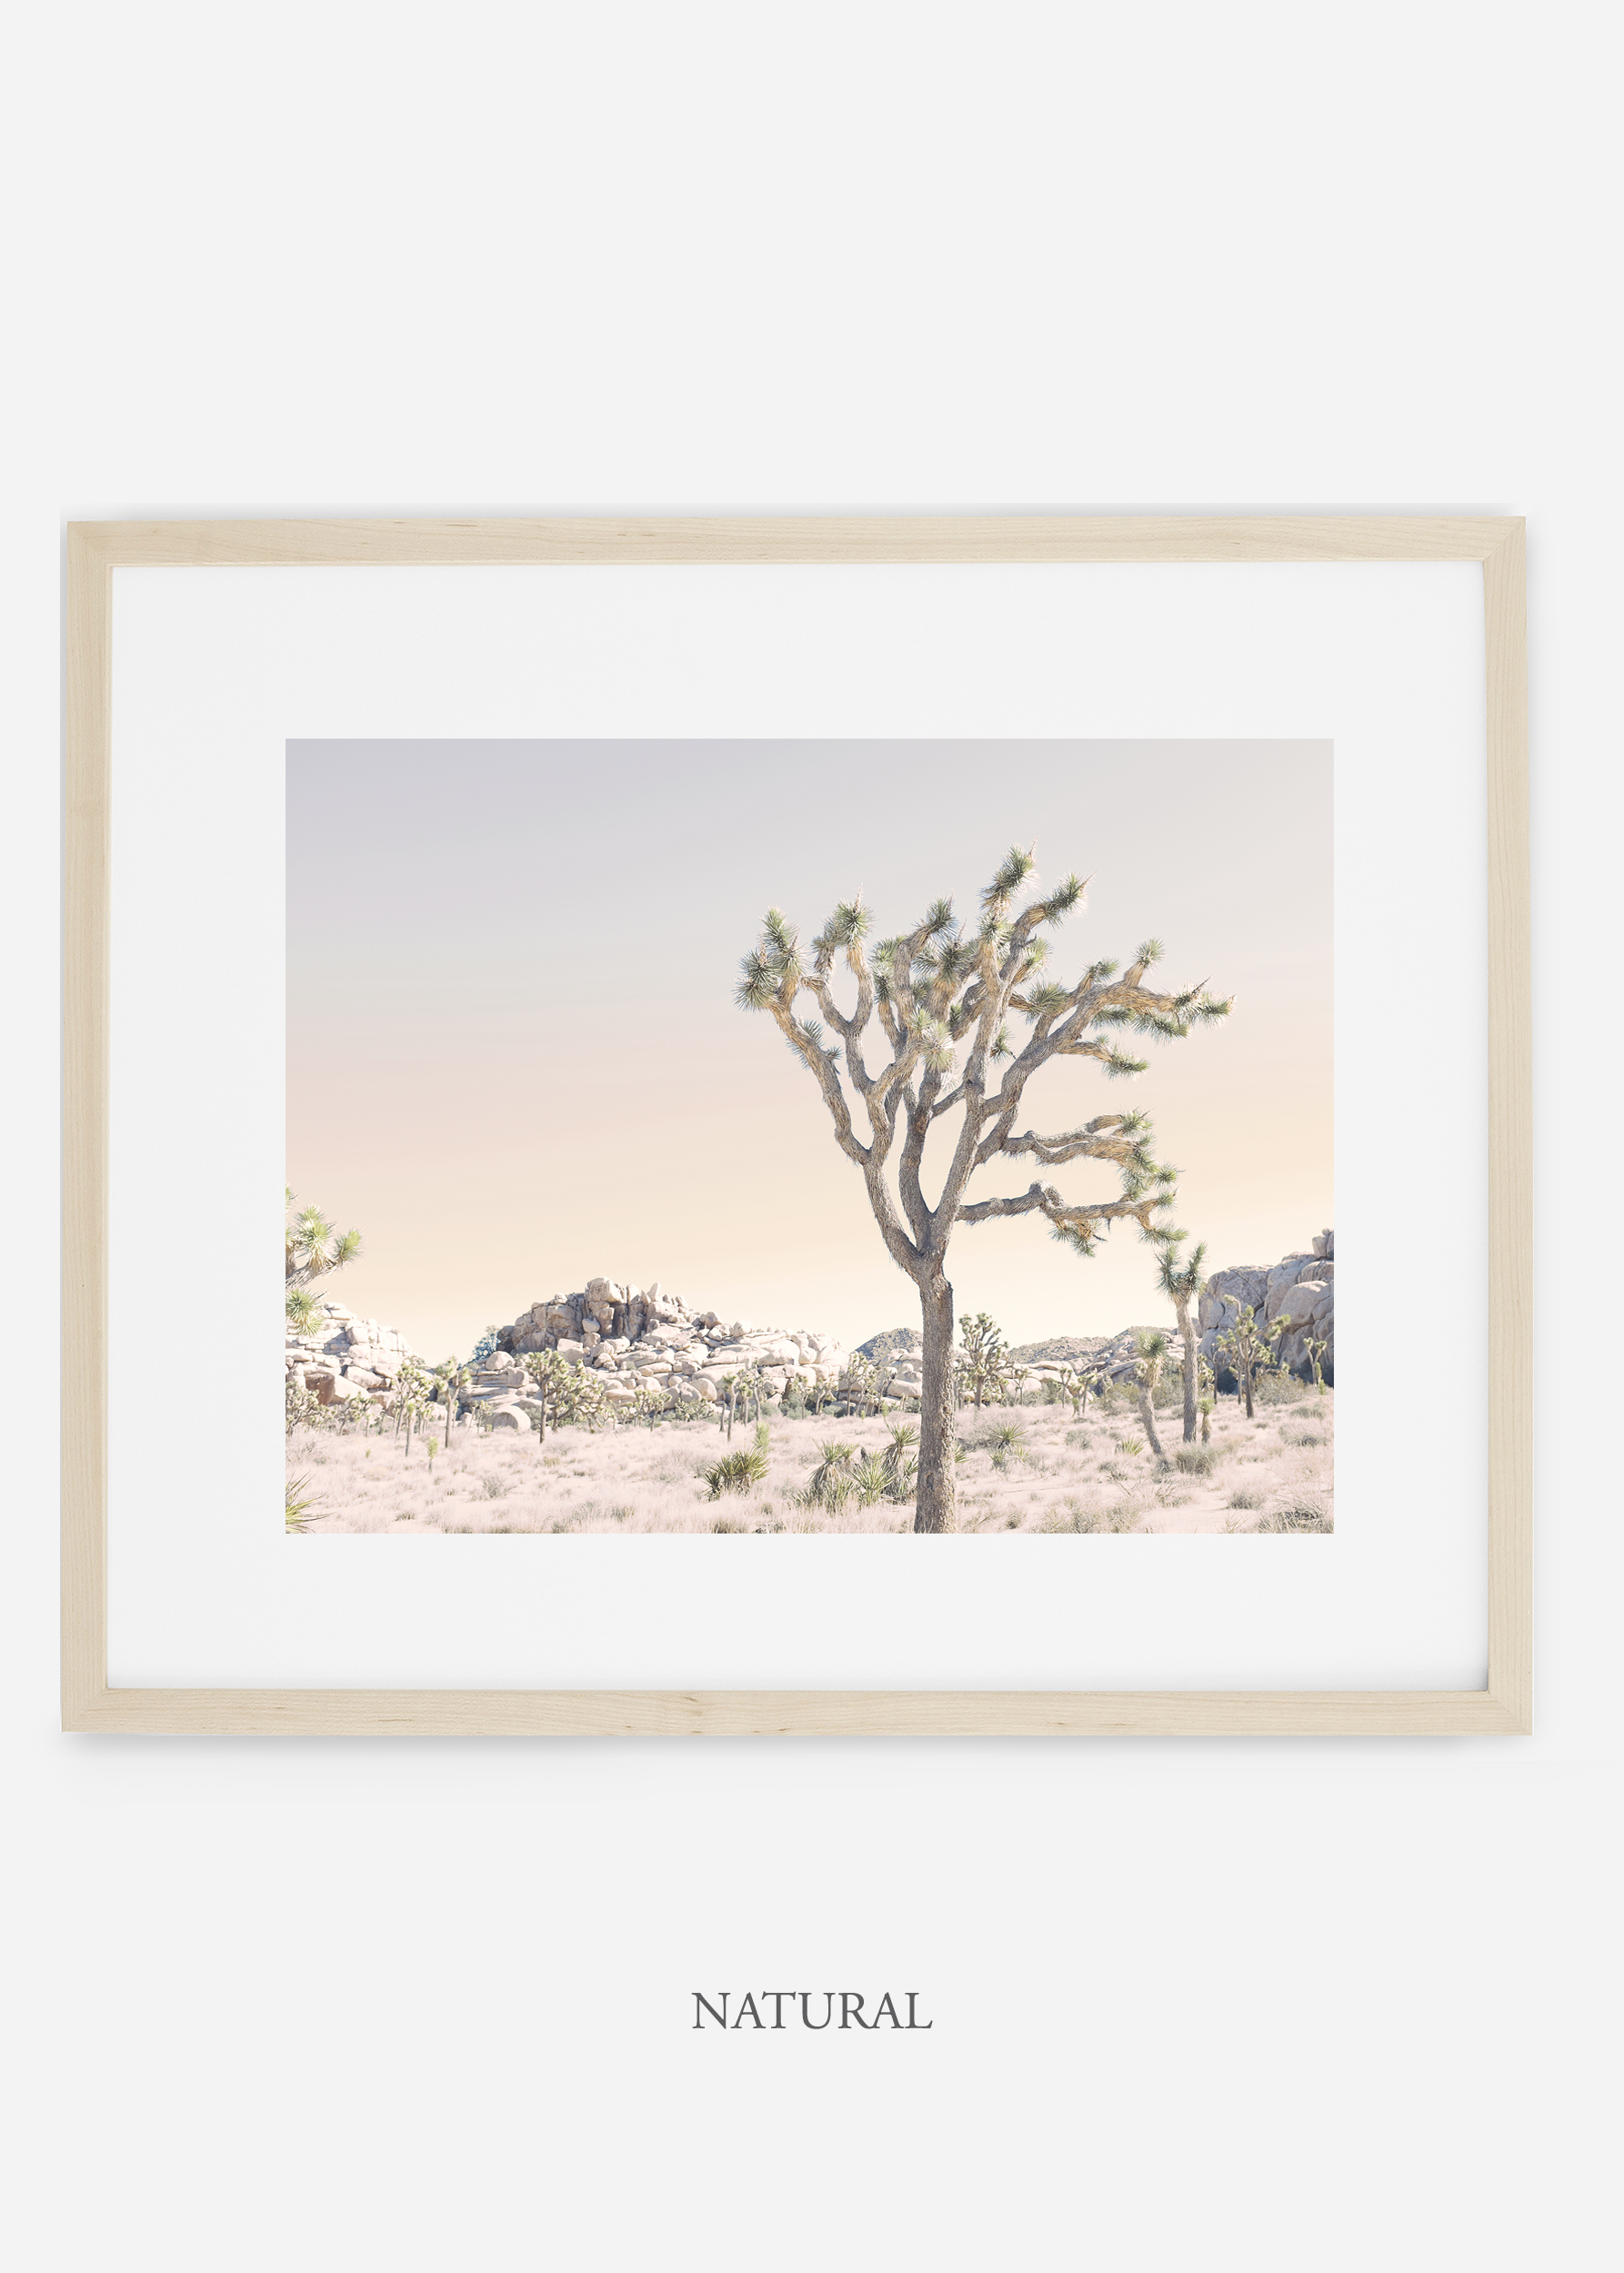 WilderCalifornia_naturalframe_JoshuaTree_No.3_interiordesign_prints_art.jpg